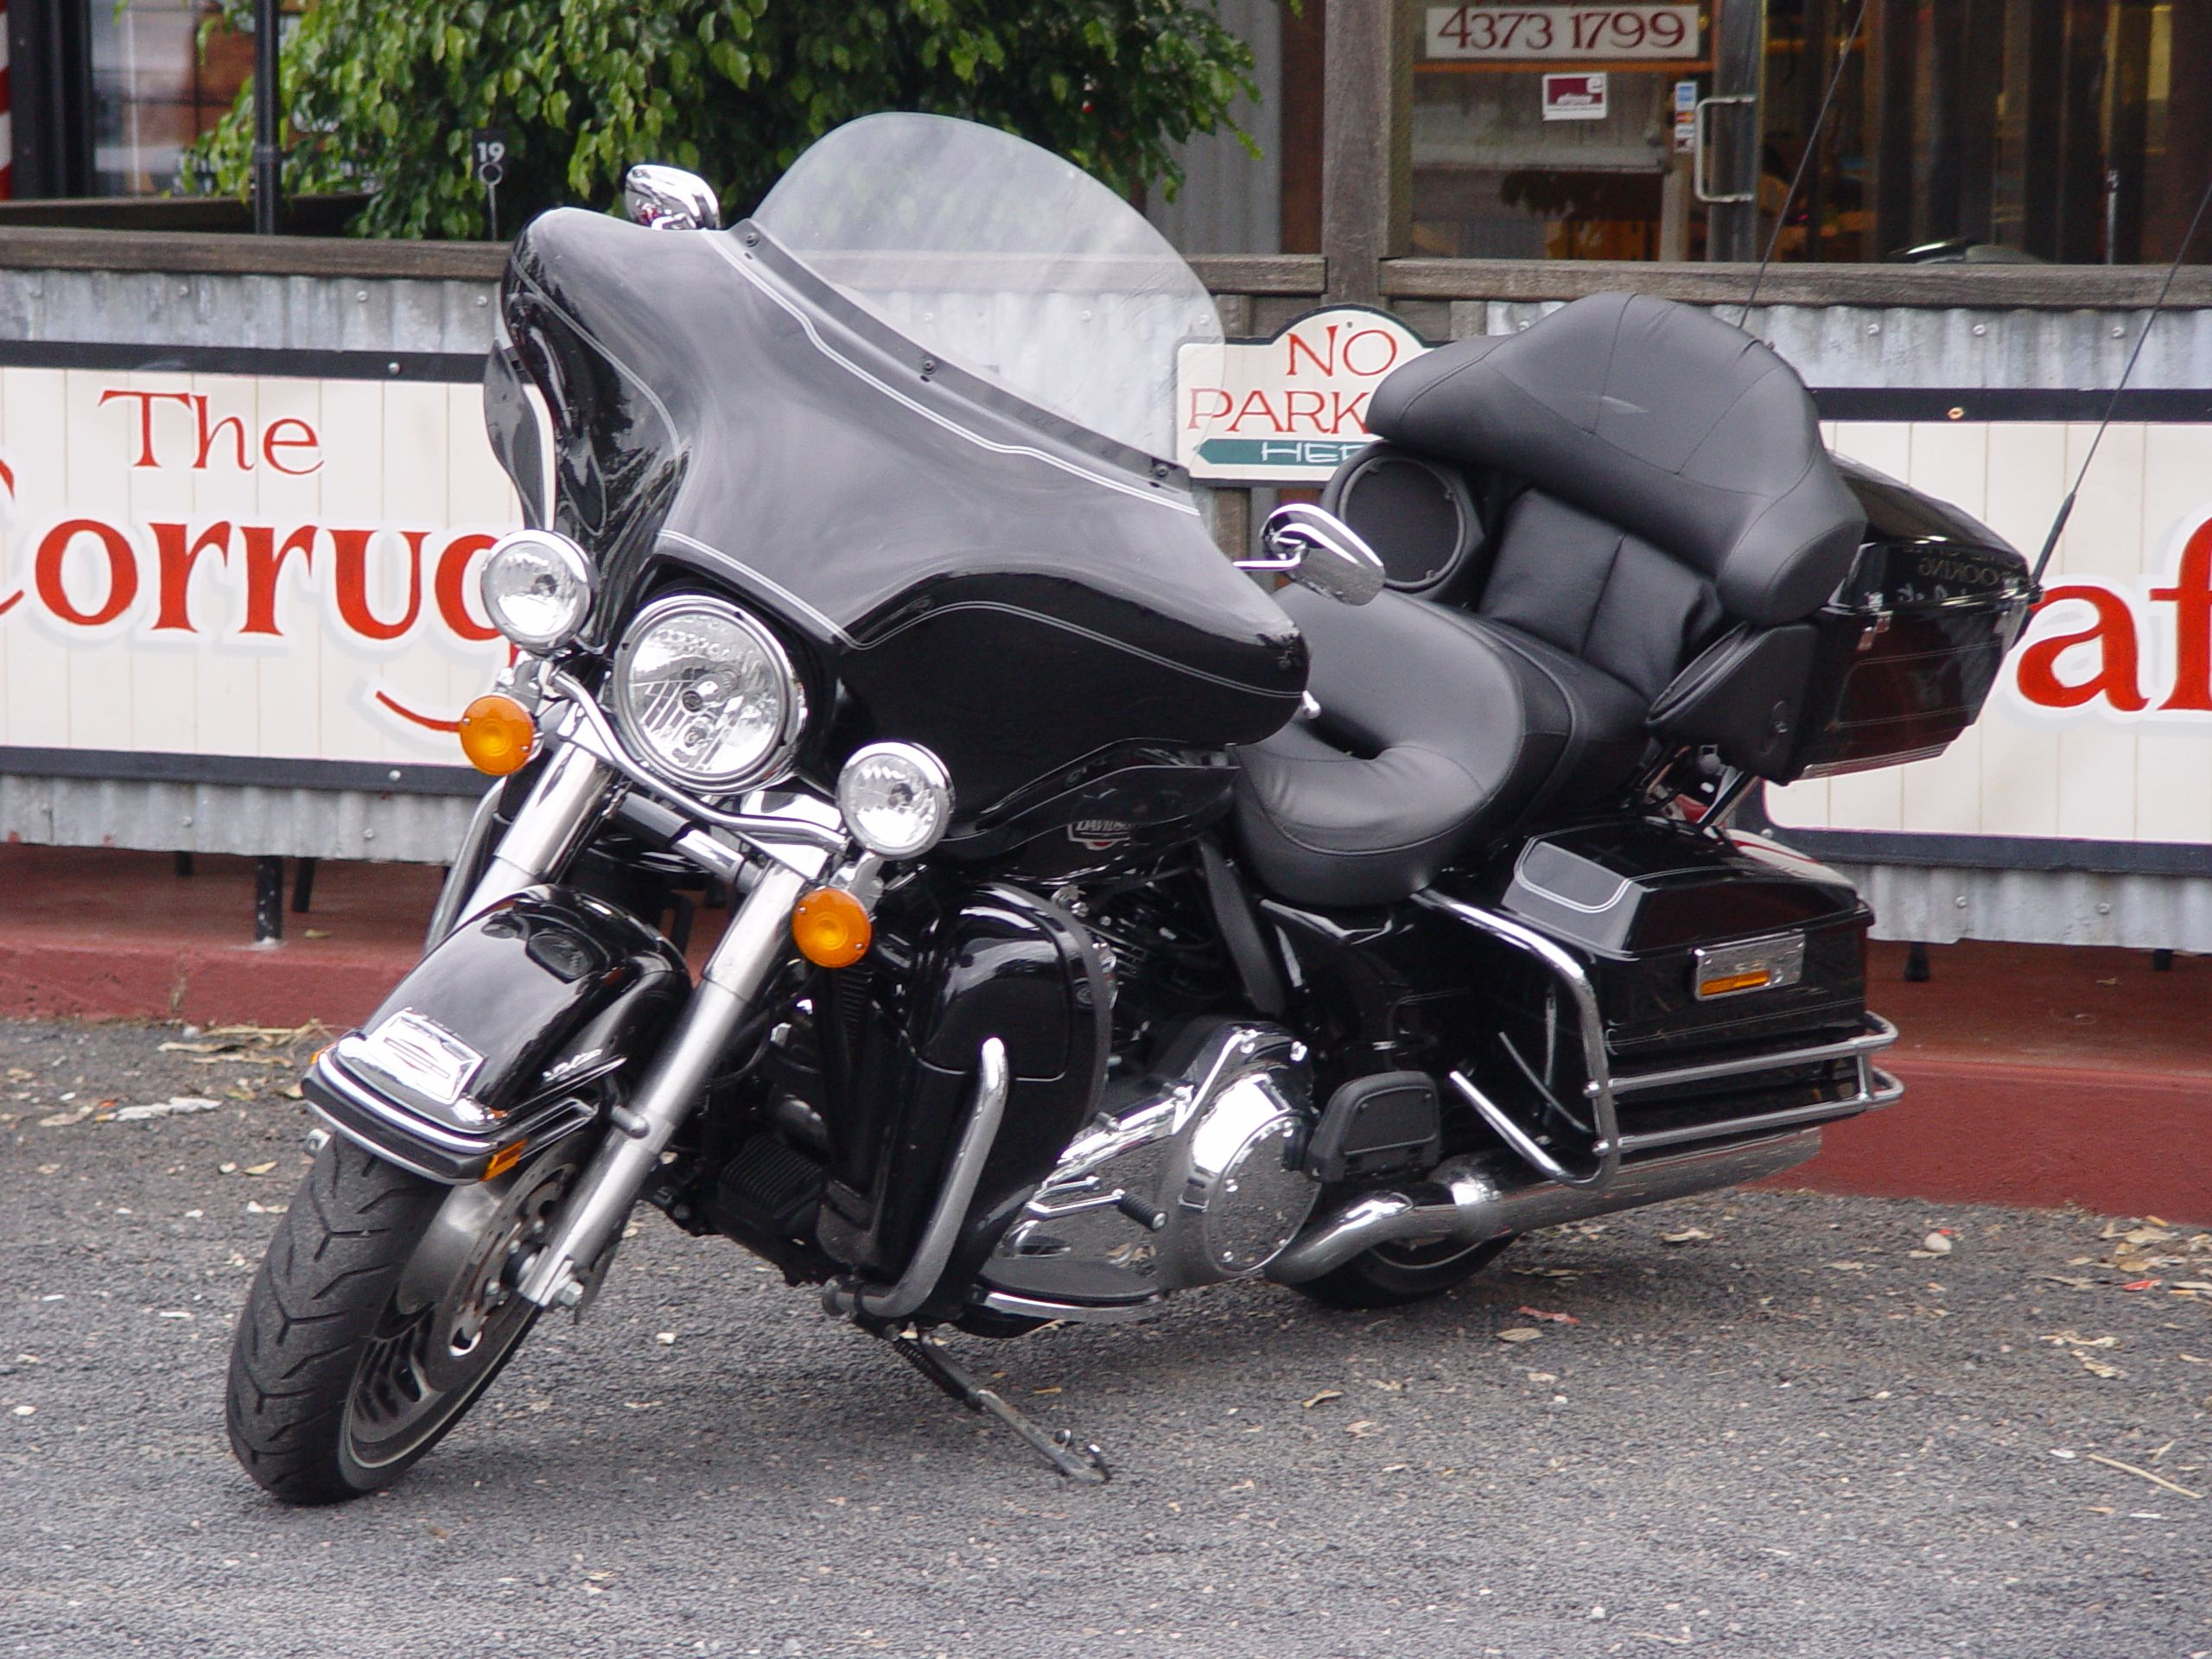 Cafe Cruiser Harley Electra Glide Ultra Classic Love Riding The Harley With Dennis Harley Bikes Harley Davidson Motor Harley Davidson Baggers [ 1920 x 2560 Pixel ]